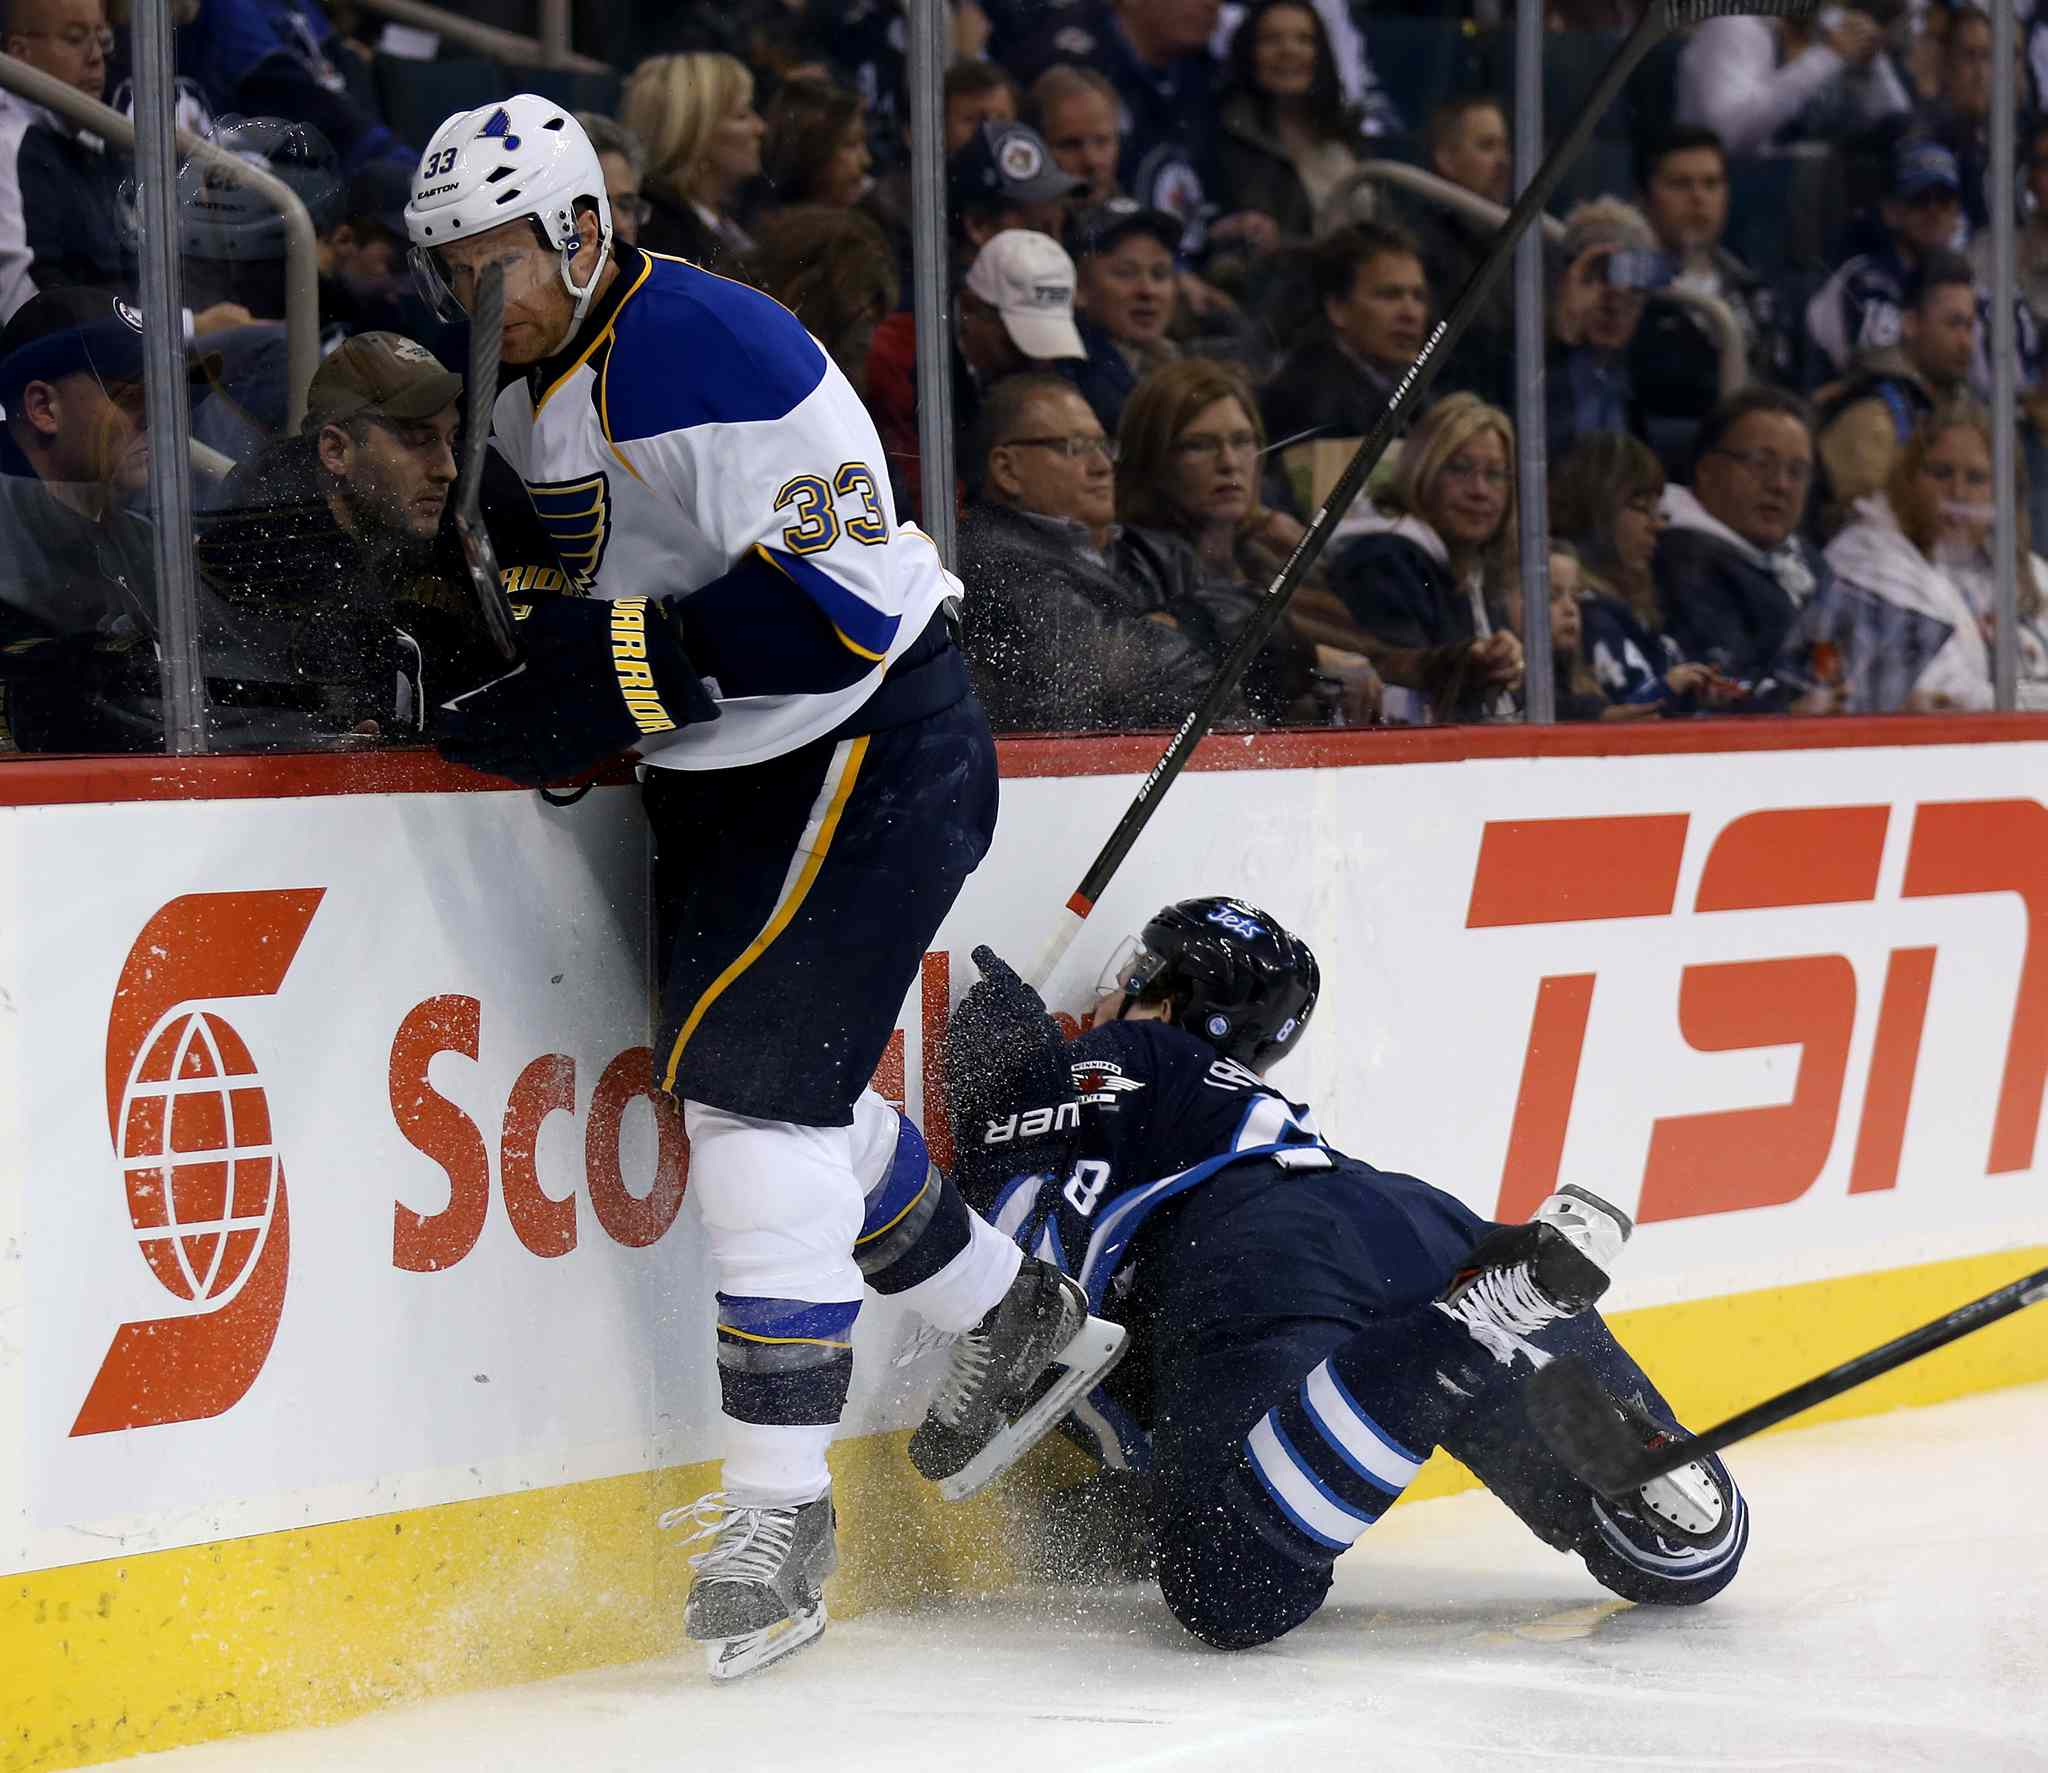 Jordan Leopold of the St. Louis Blues plays the puck as Jacob Trouba goes crashing into the boards during the second period.